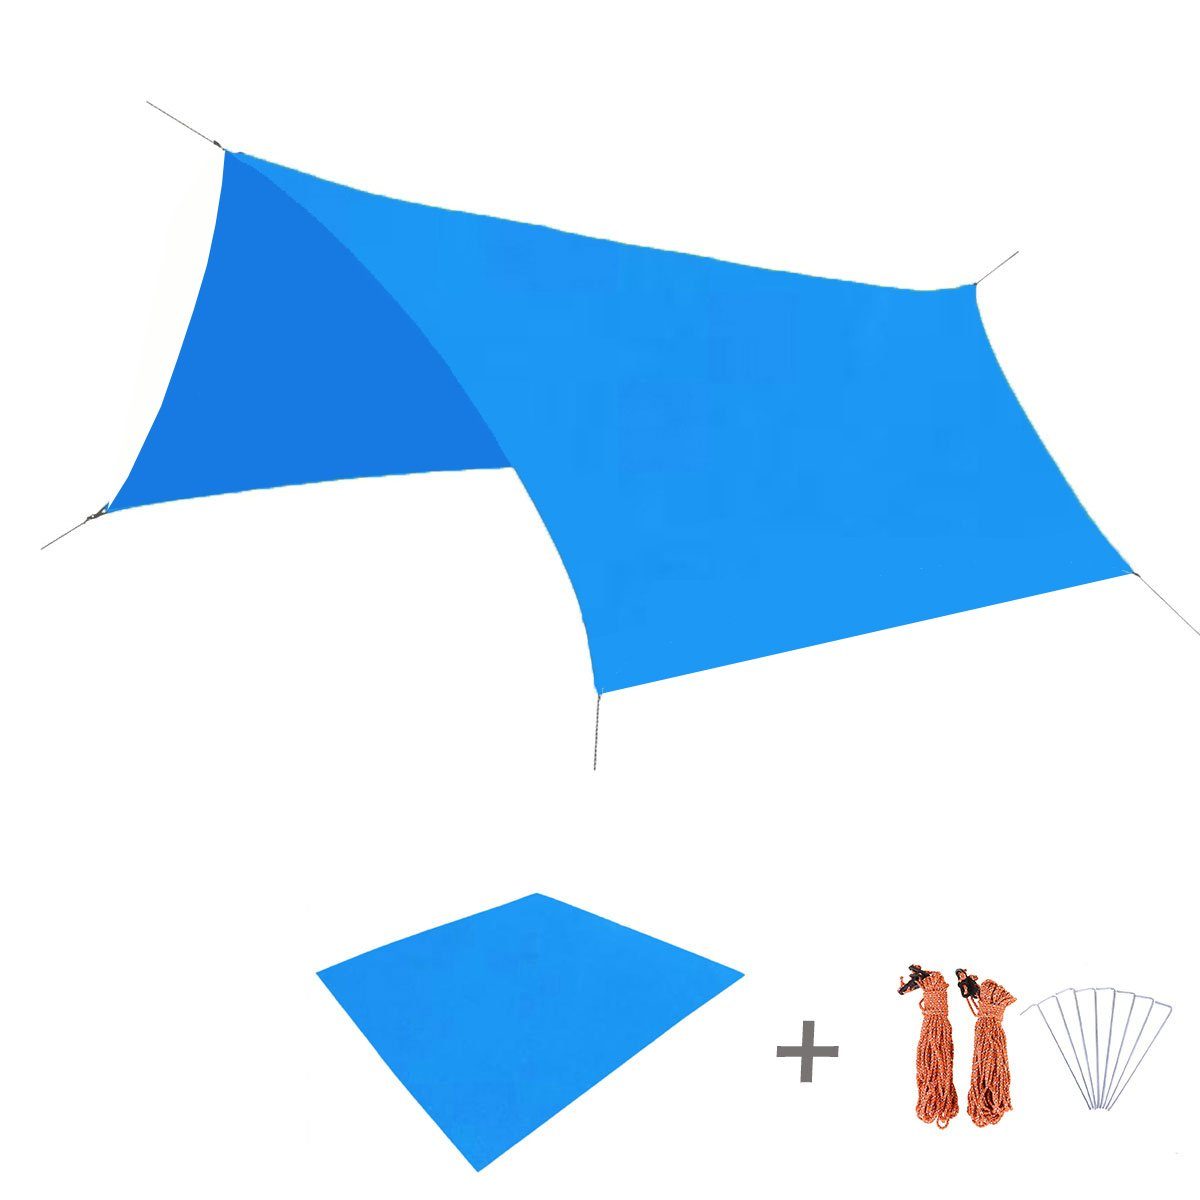 TRIWONDER Waterproof Hammock Rain Fly Tent Tarp Footprint Camping Shelter Ground Cloth Sunshade Mat for Outdoor Hiking Beach Picnic (Blue, L+Accessories) by TRIWONDER